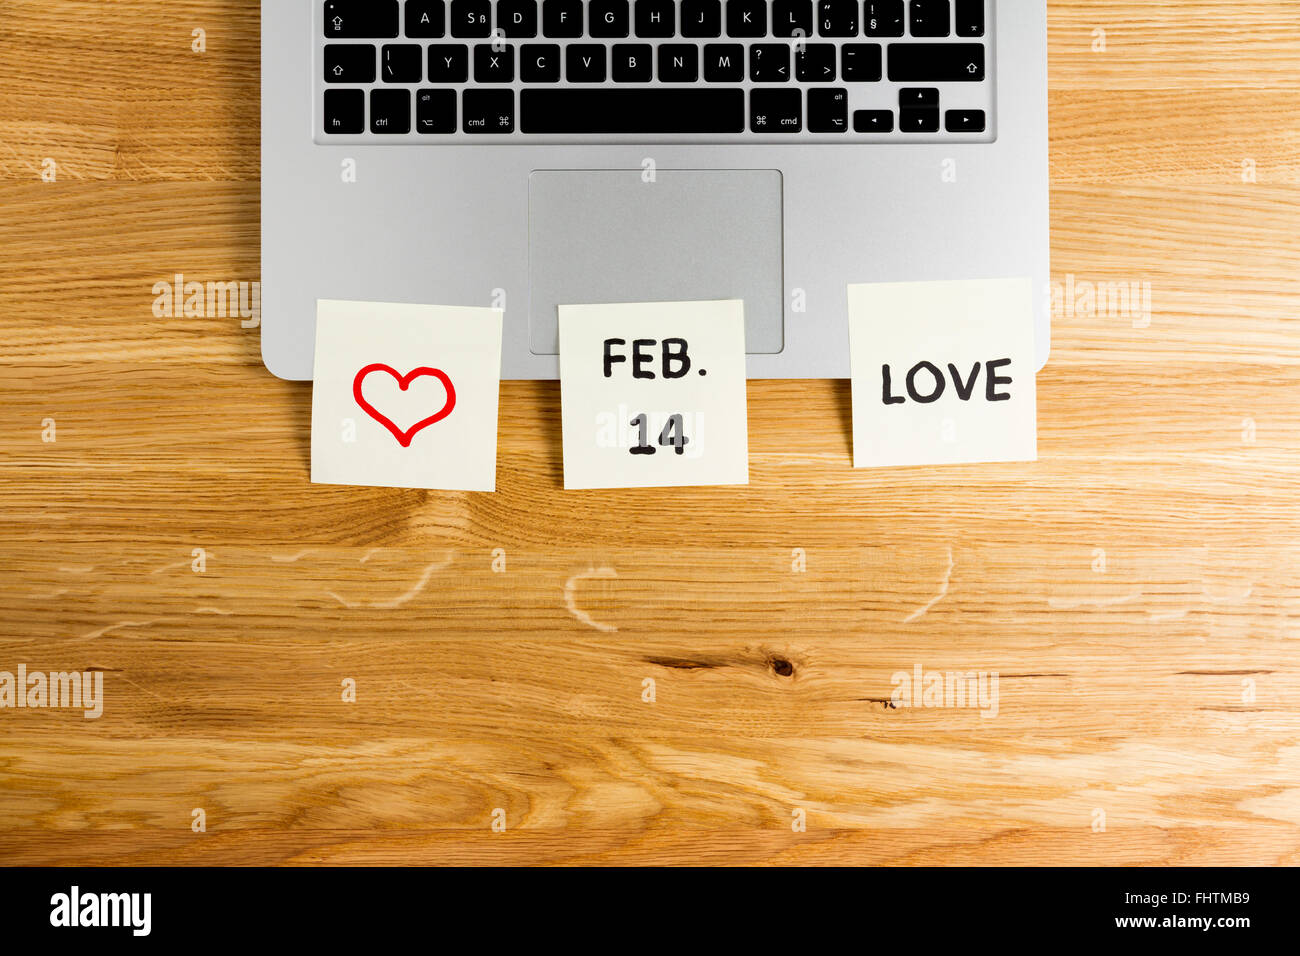 Valentine's Day concept office remember postit - Stock Image